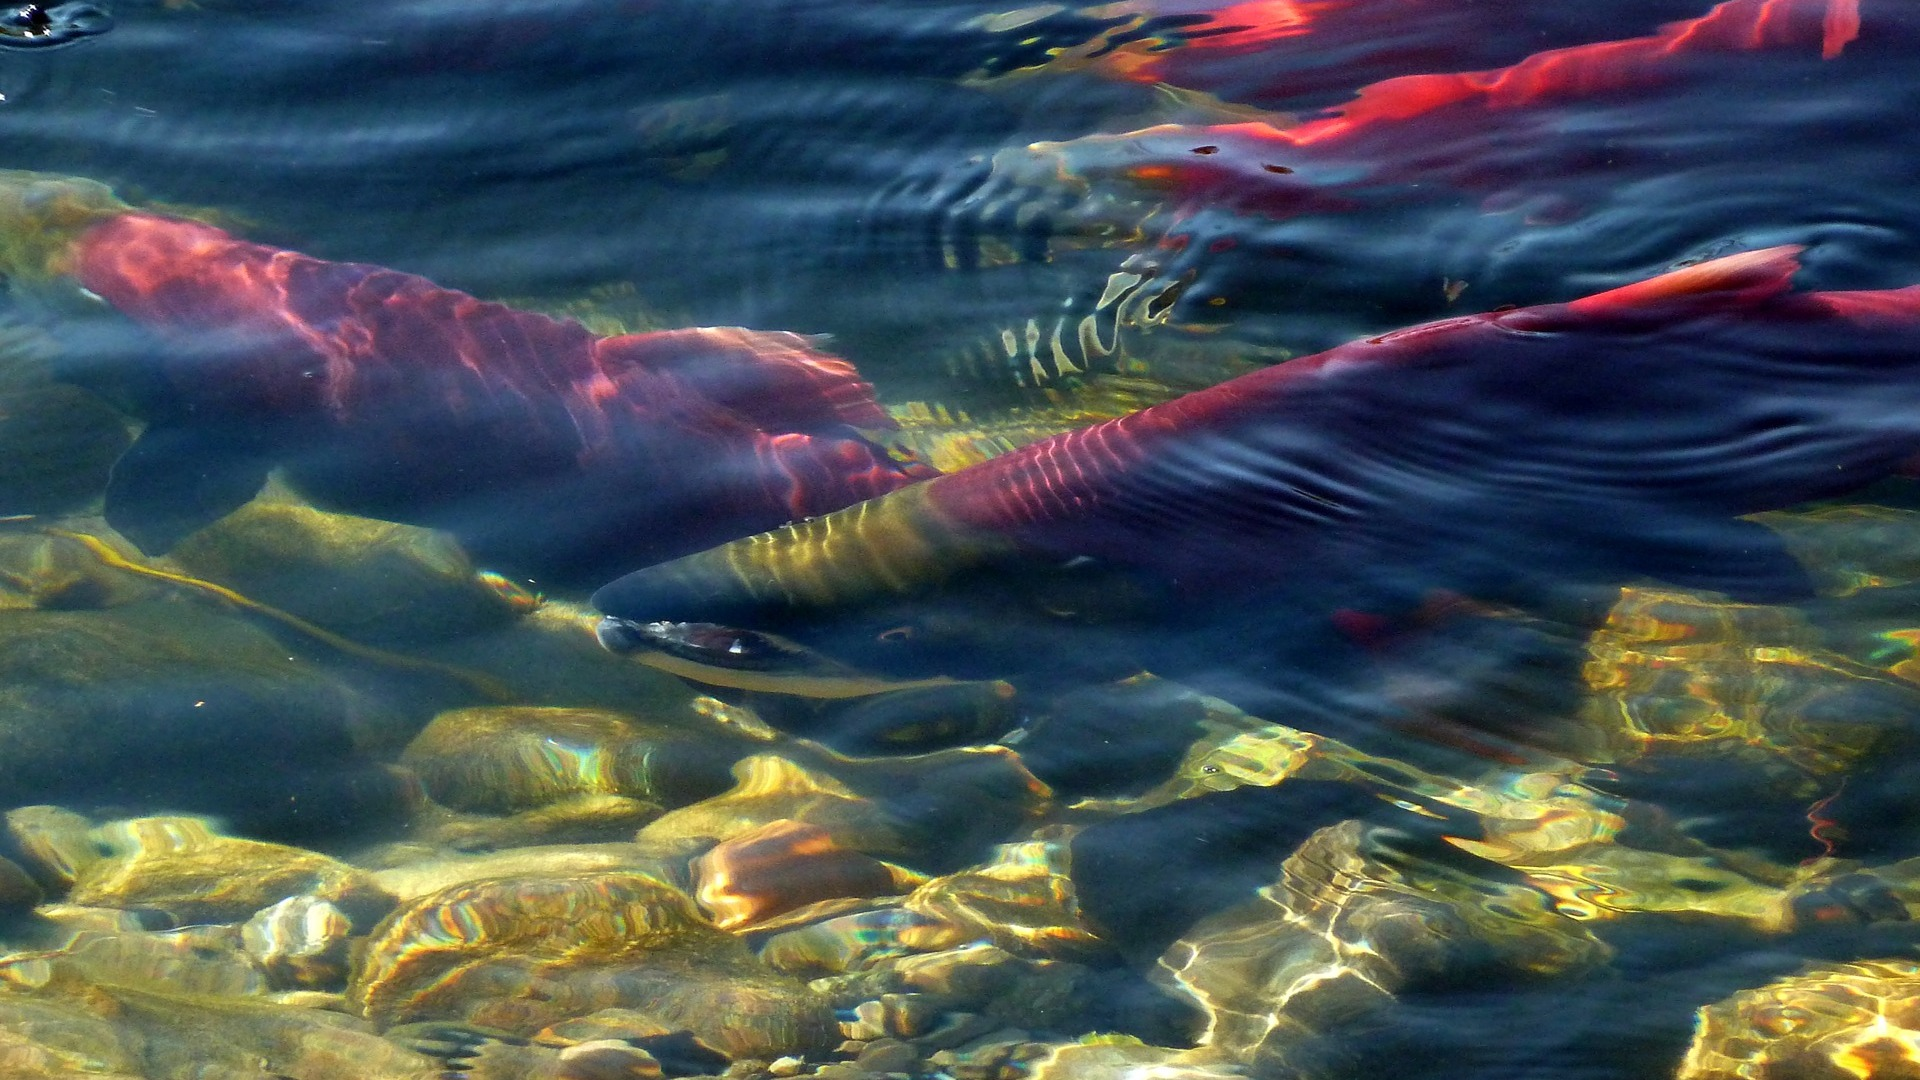 The ongoing tragedy of the disappearing salmon